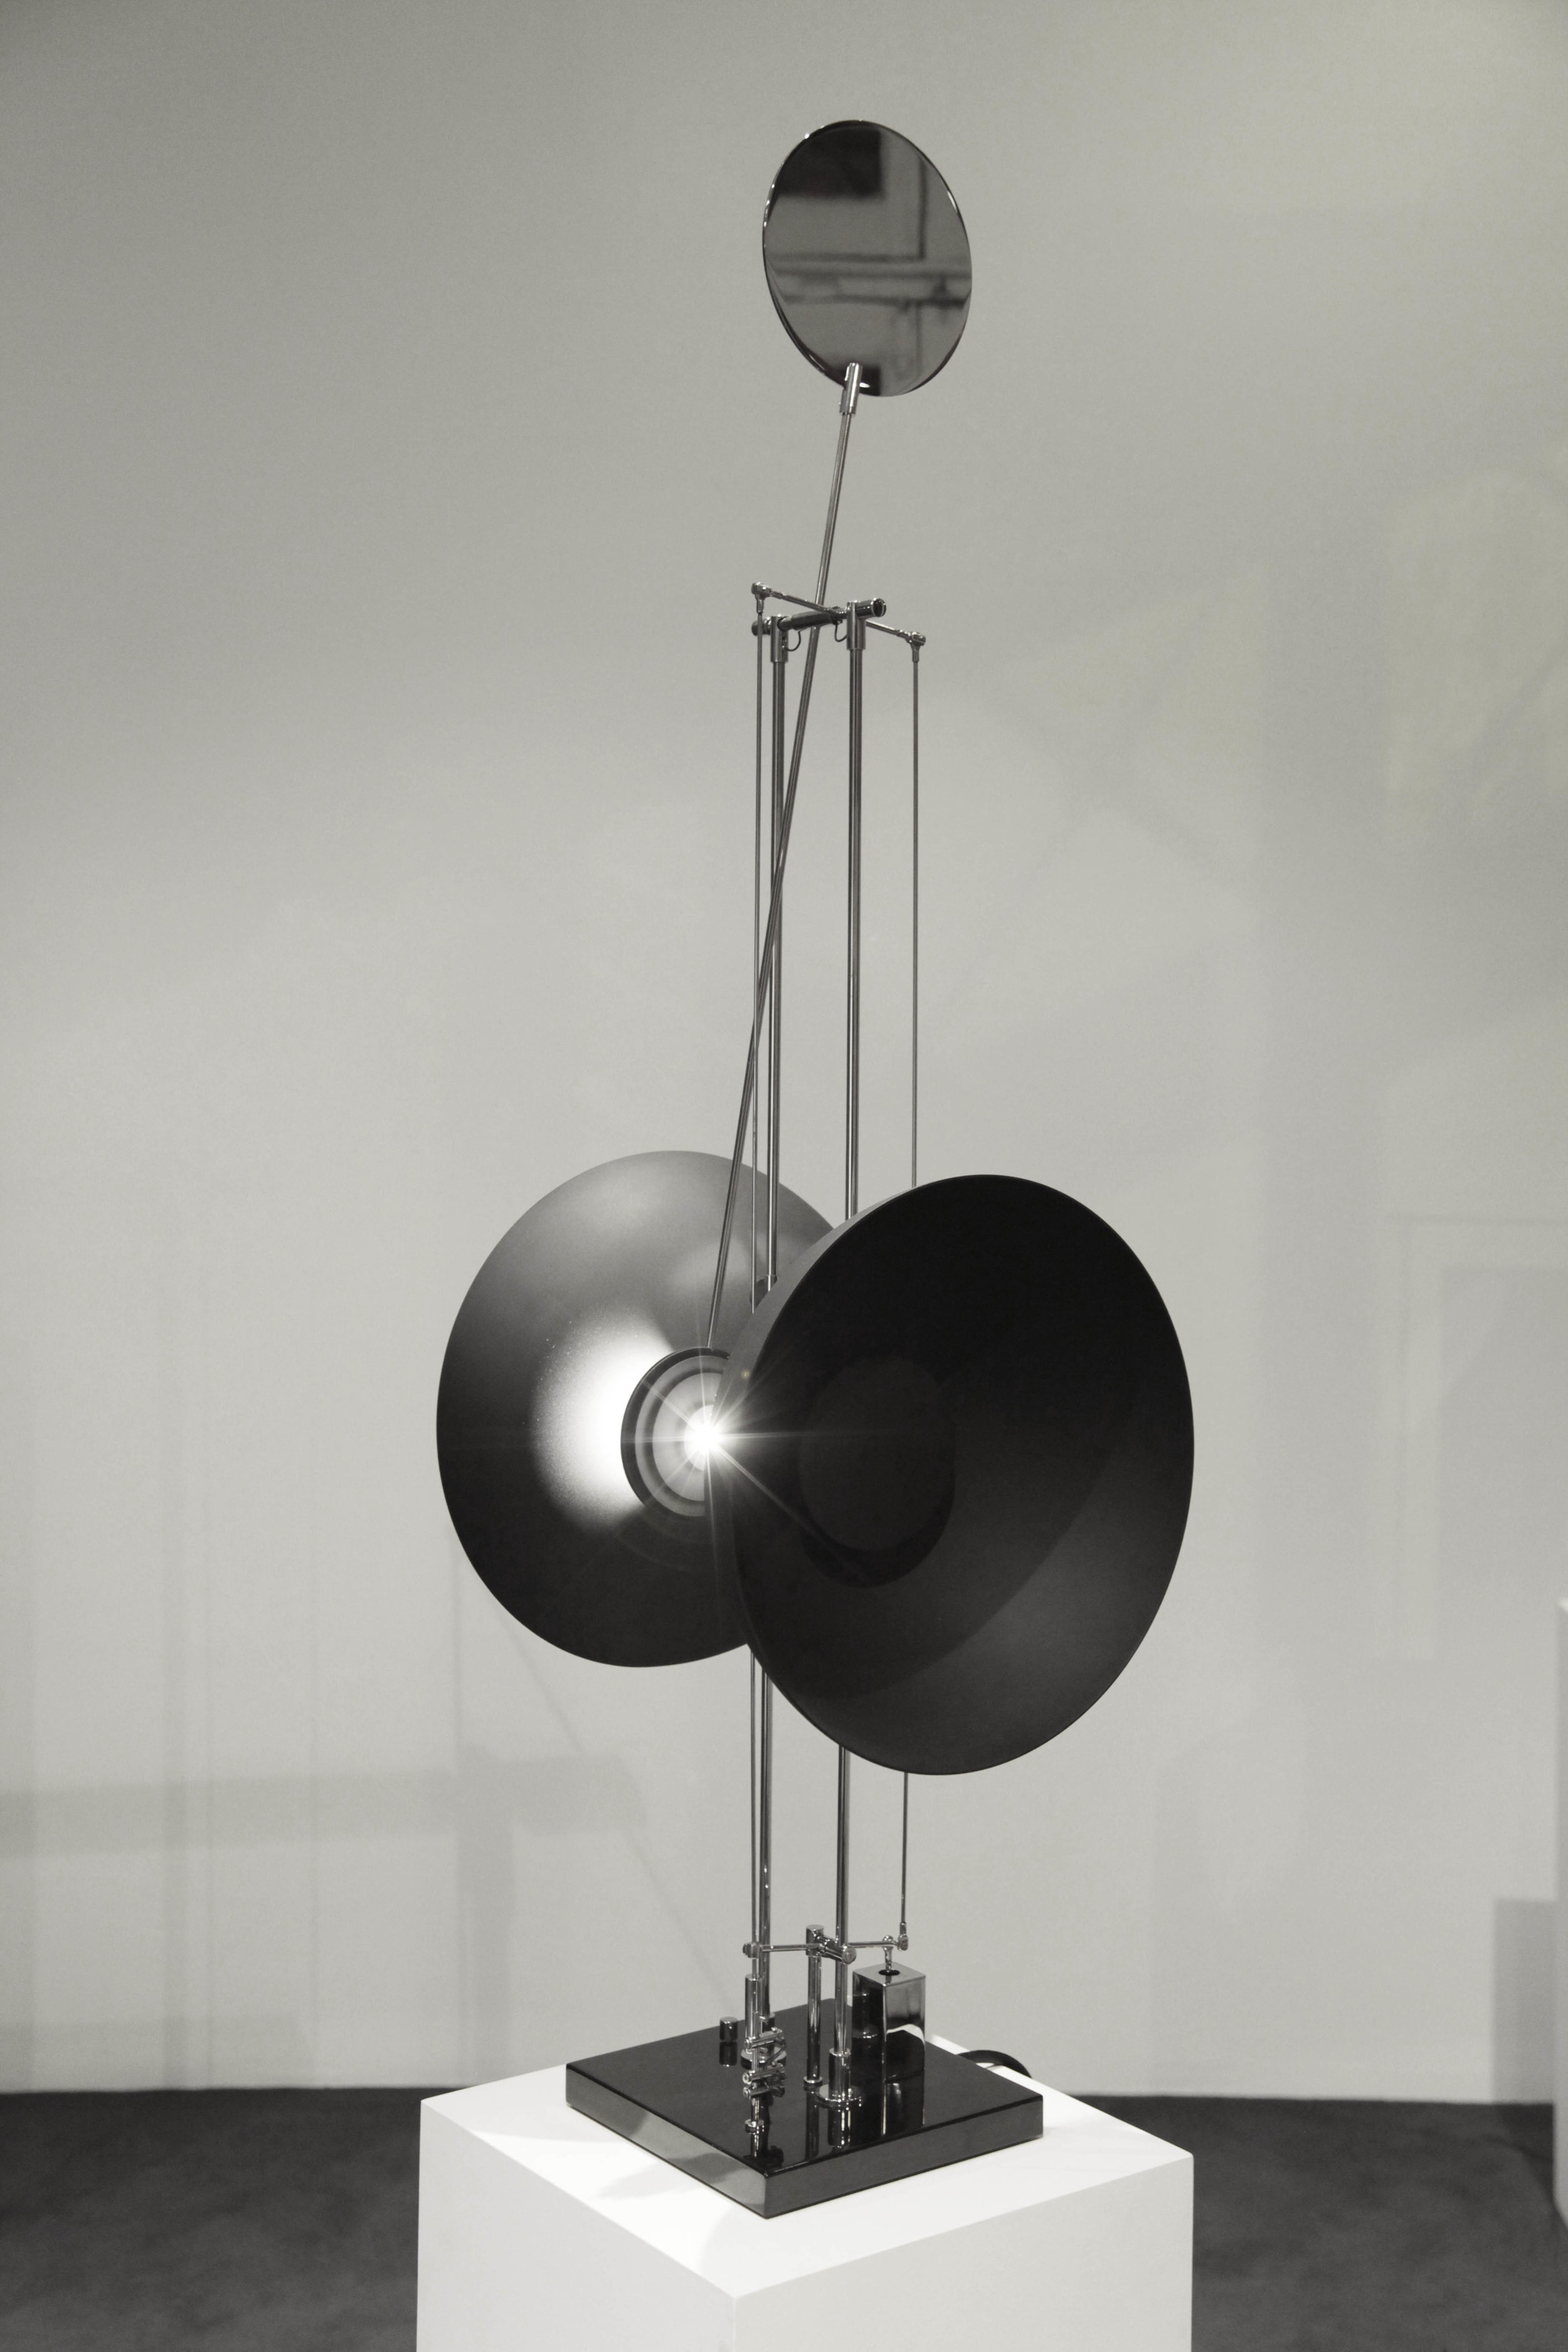 Length Variations Anodized, bead-blasted aluminum, stainless steel, LED light source Stand sculpture 133 x 30 x 30 cm  ed. 3/7